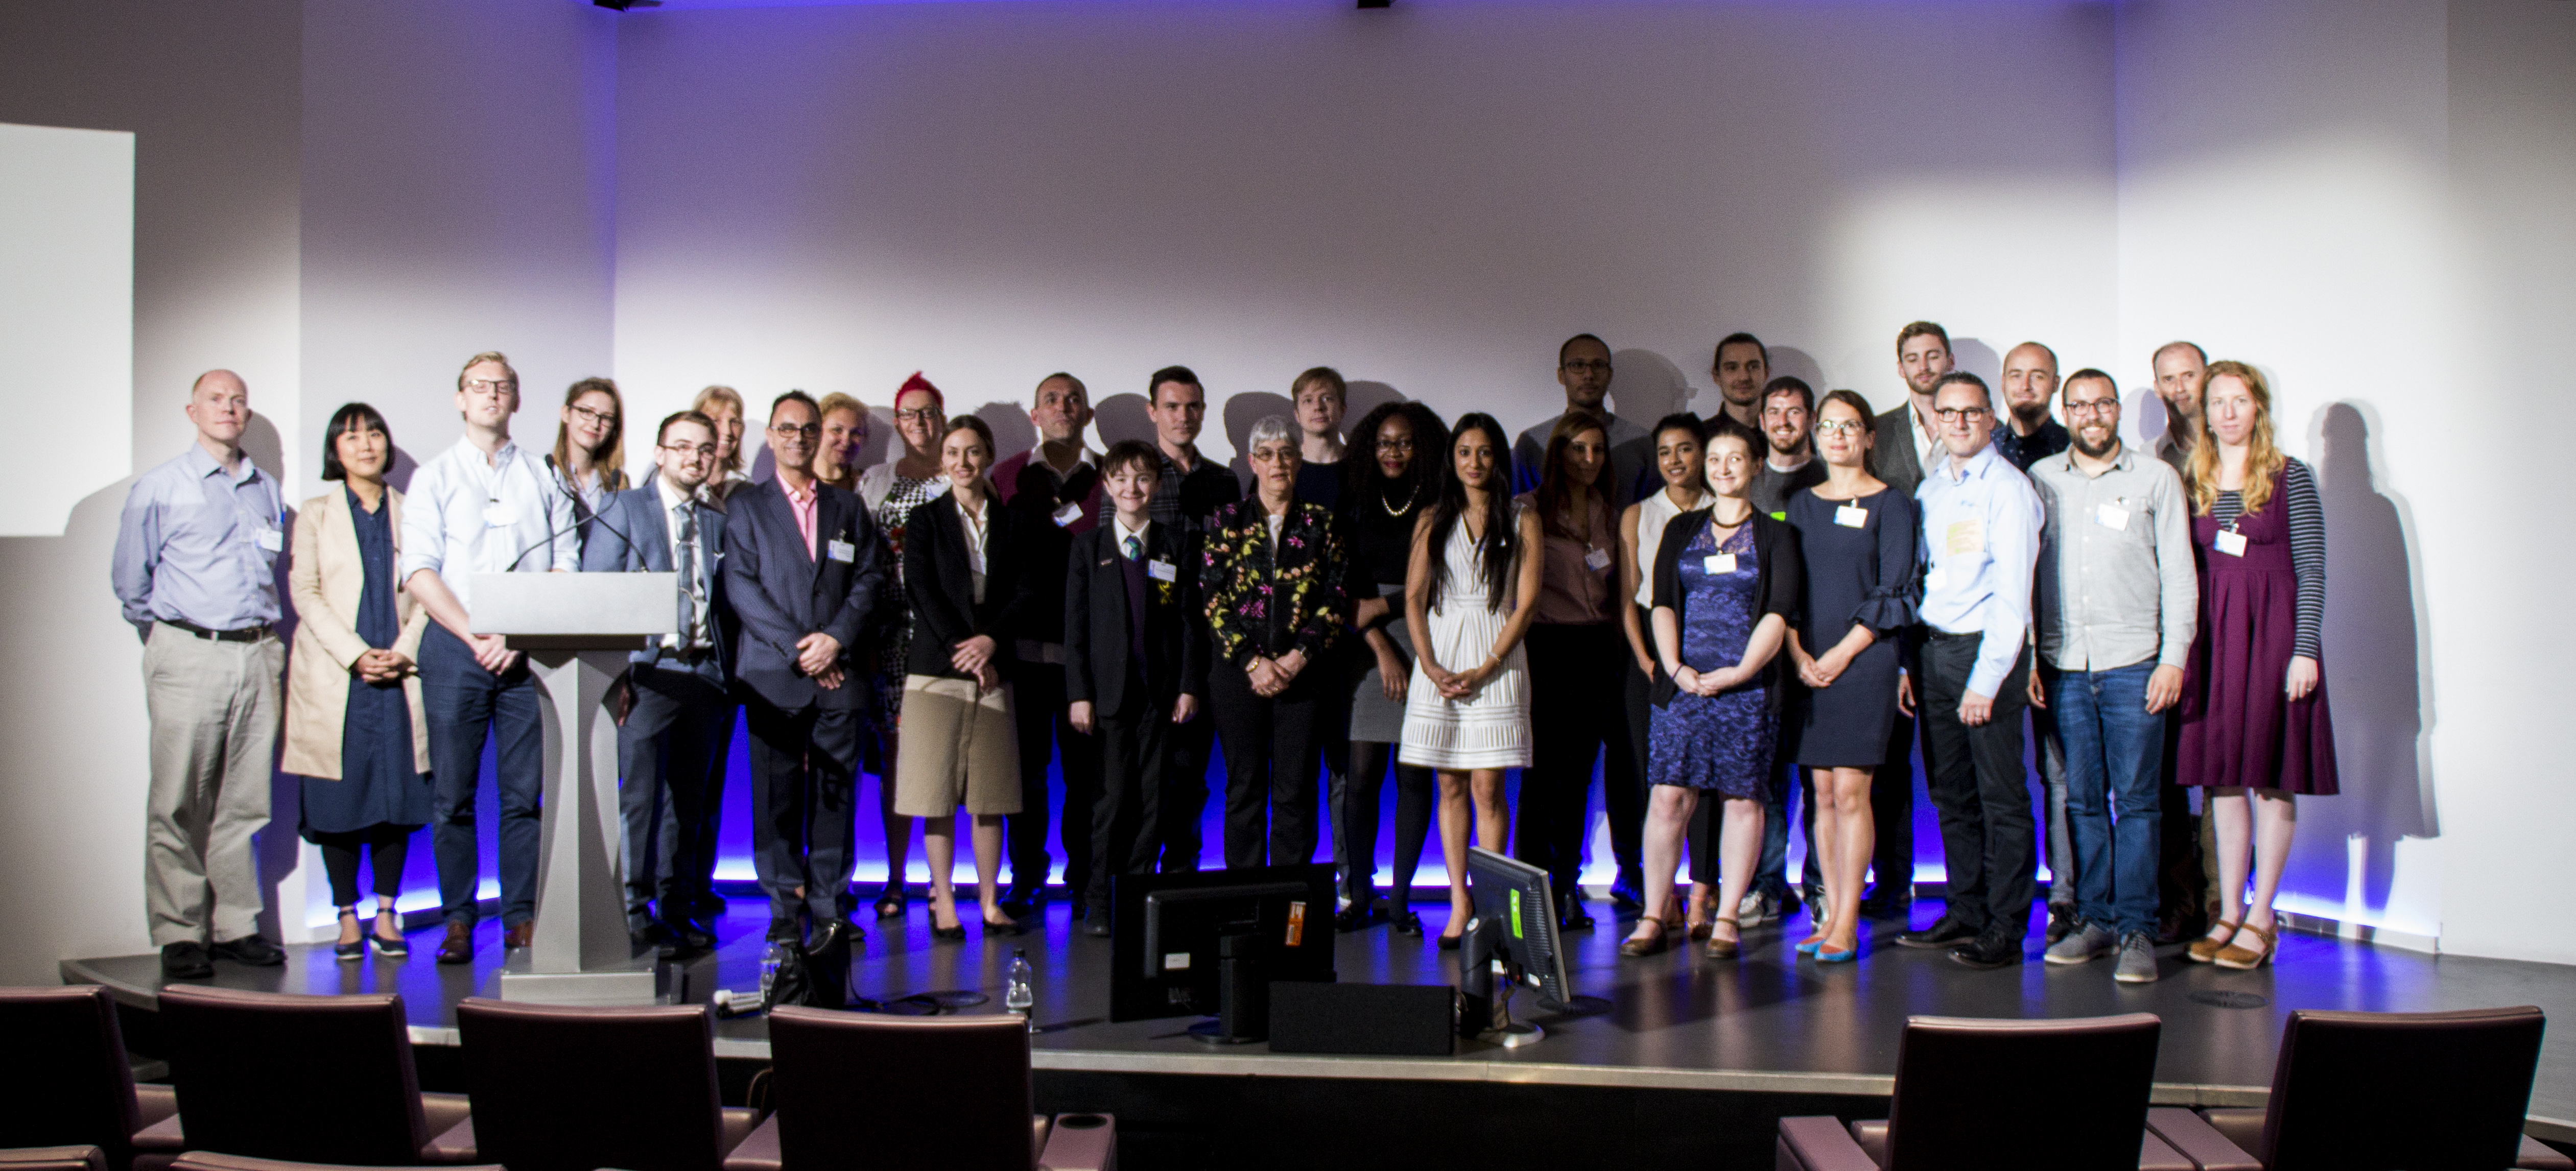 The 32 AbilityNet finalists 2017 on stage at BT Tower